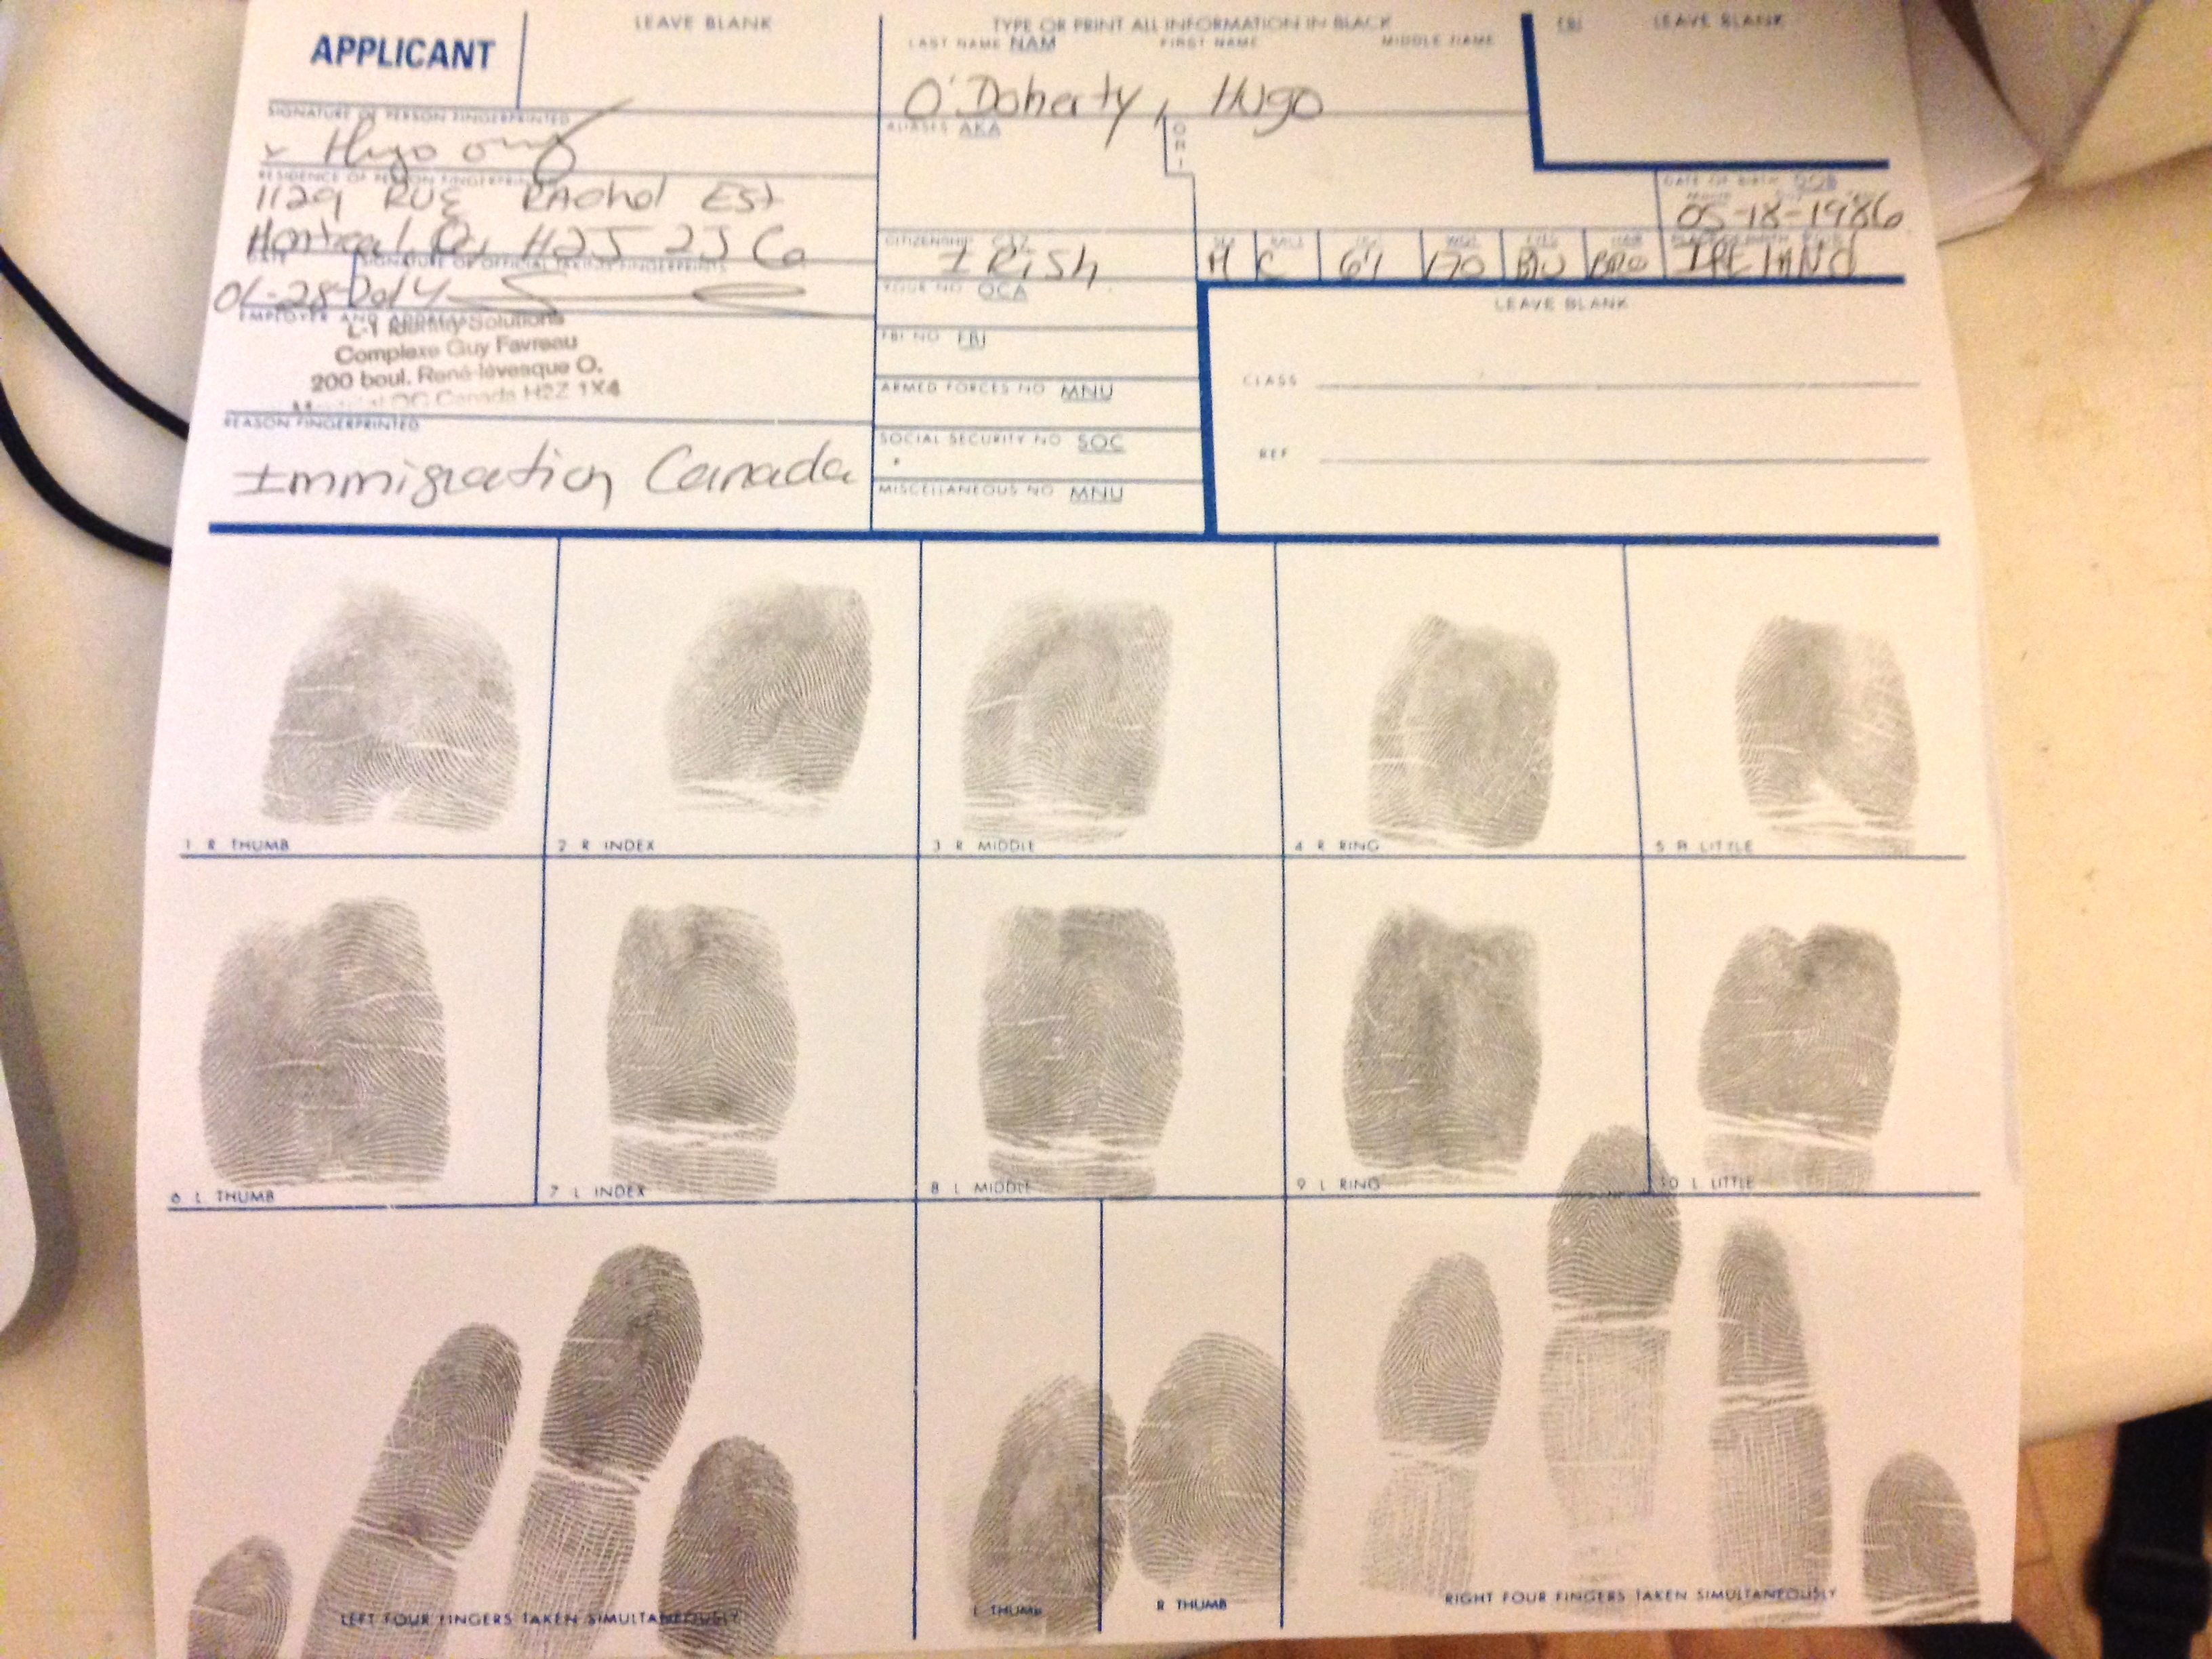 My fingerprints that were sent to the FBI